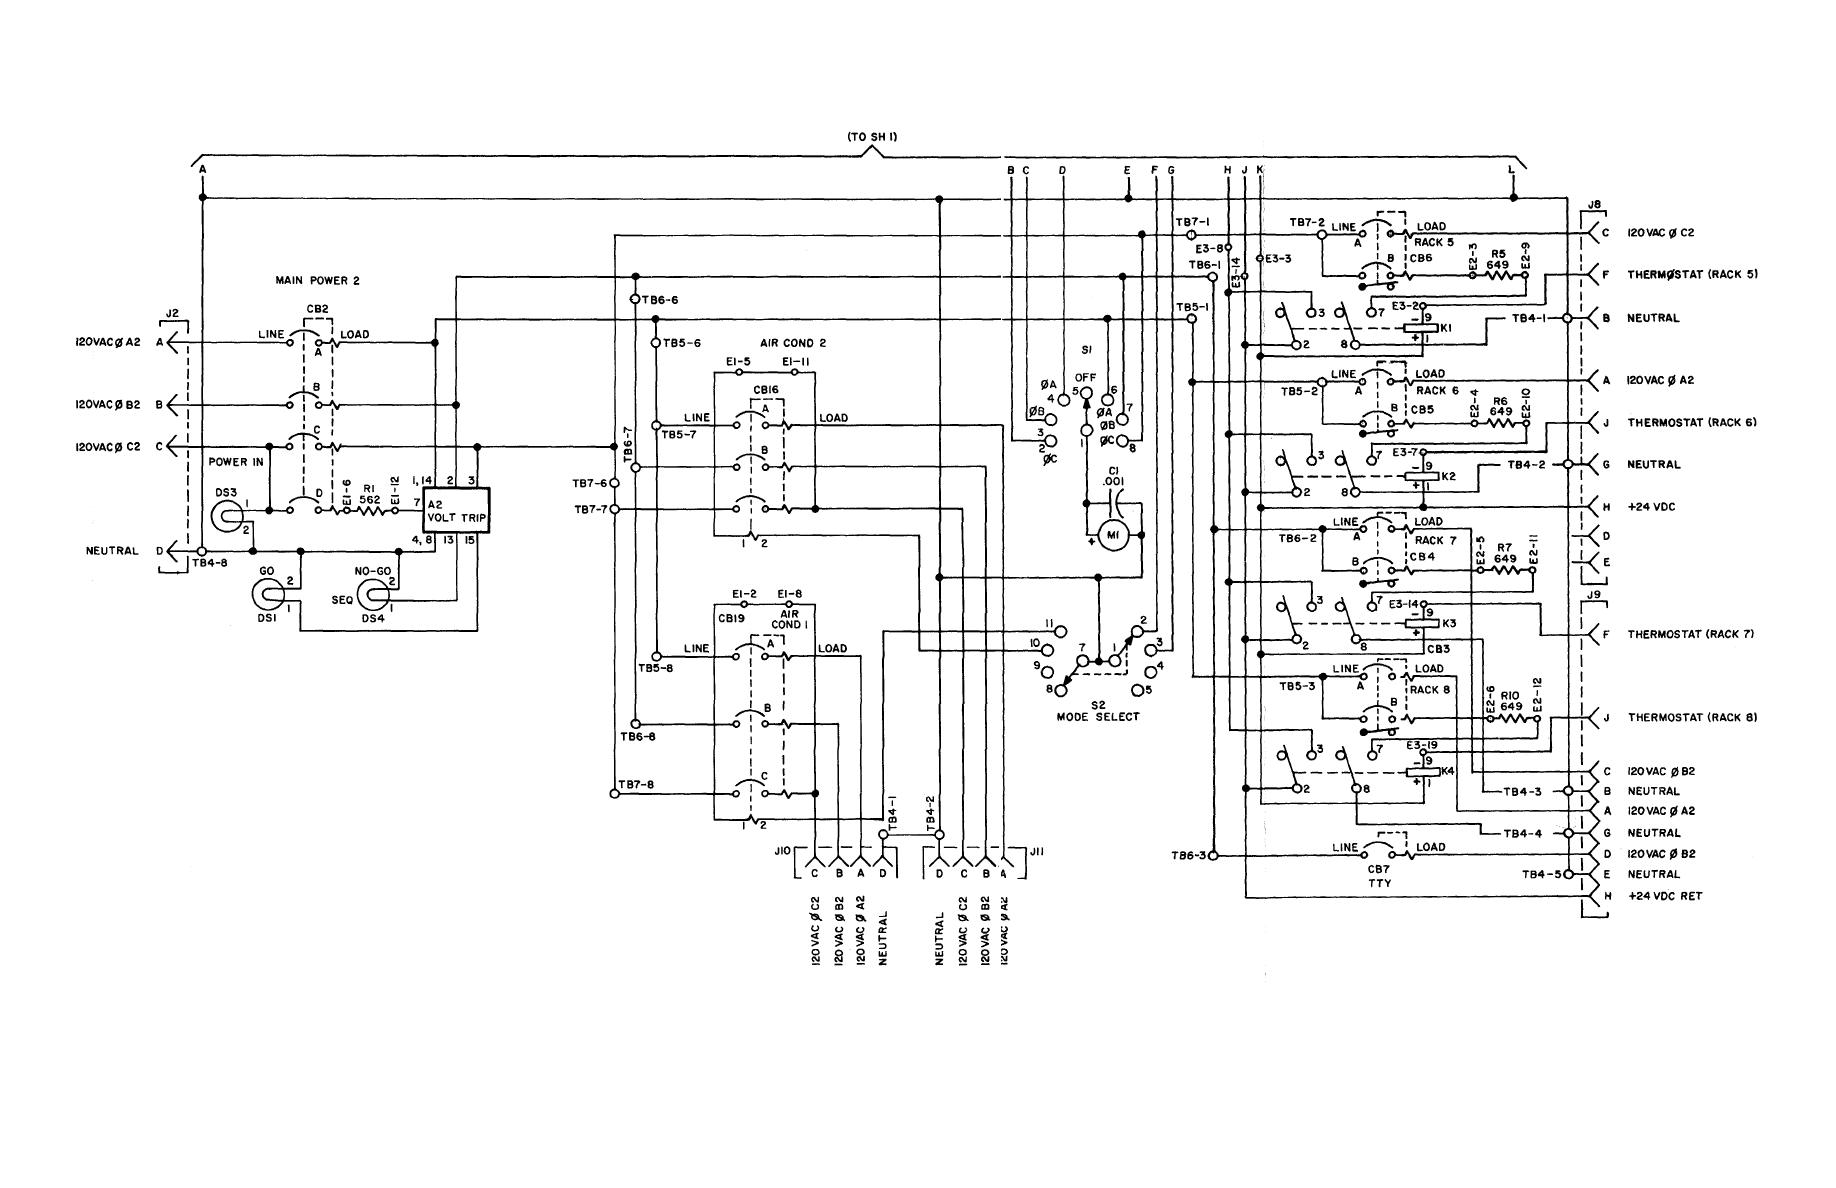 TM 11 5895 846 140385im figure fo 6 power distribution panel, schematic wiring diagram wiring diagram schematic at alyssarenee.co